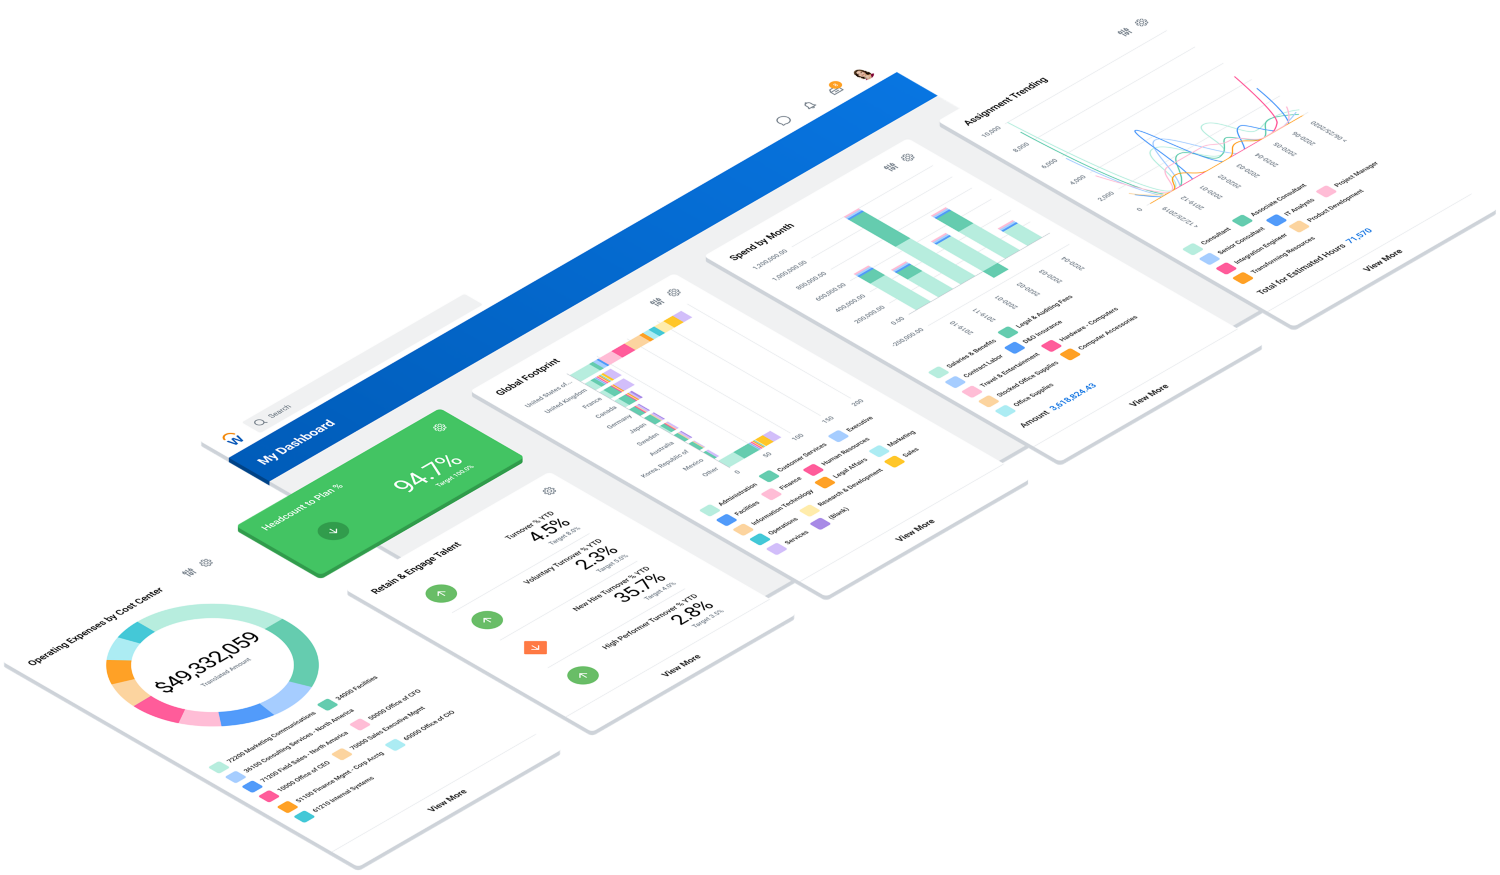 Operational analysis dashboards for finance and HR.